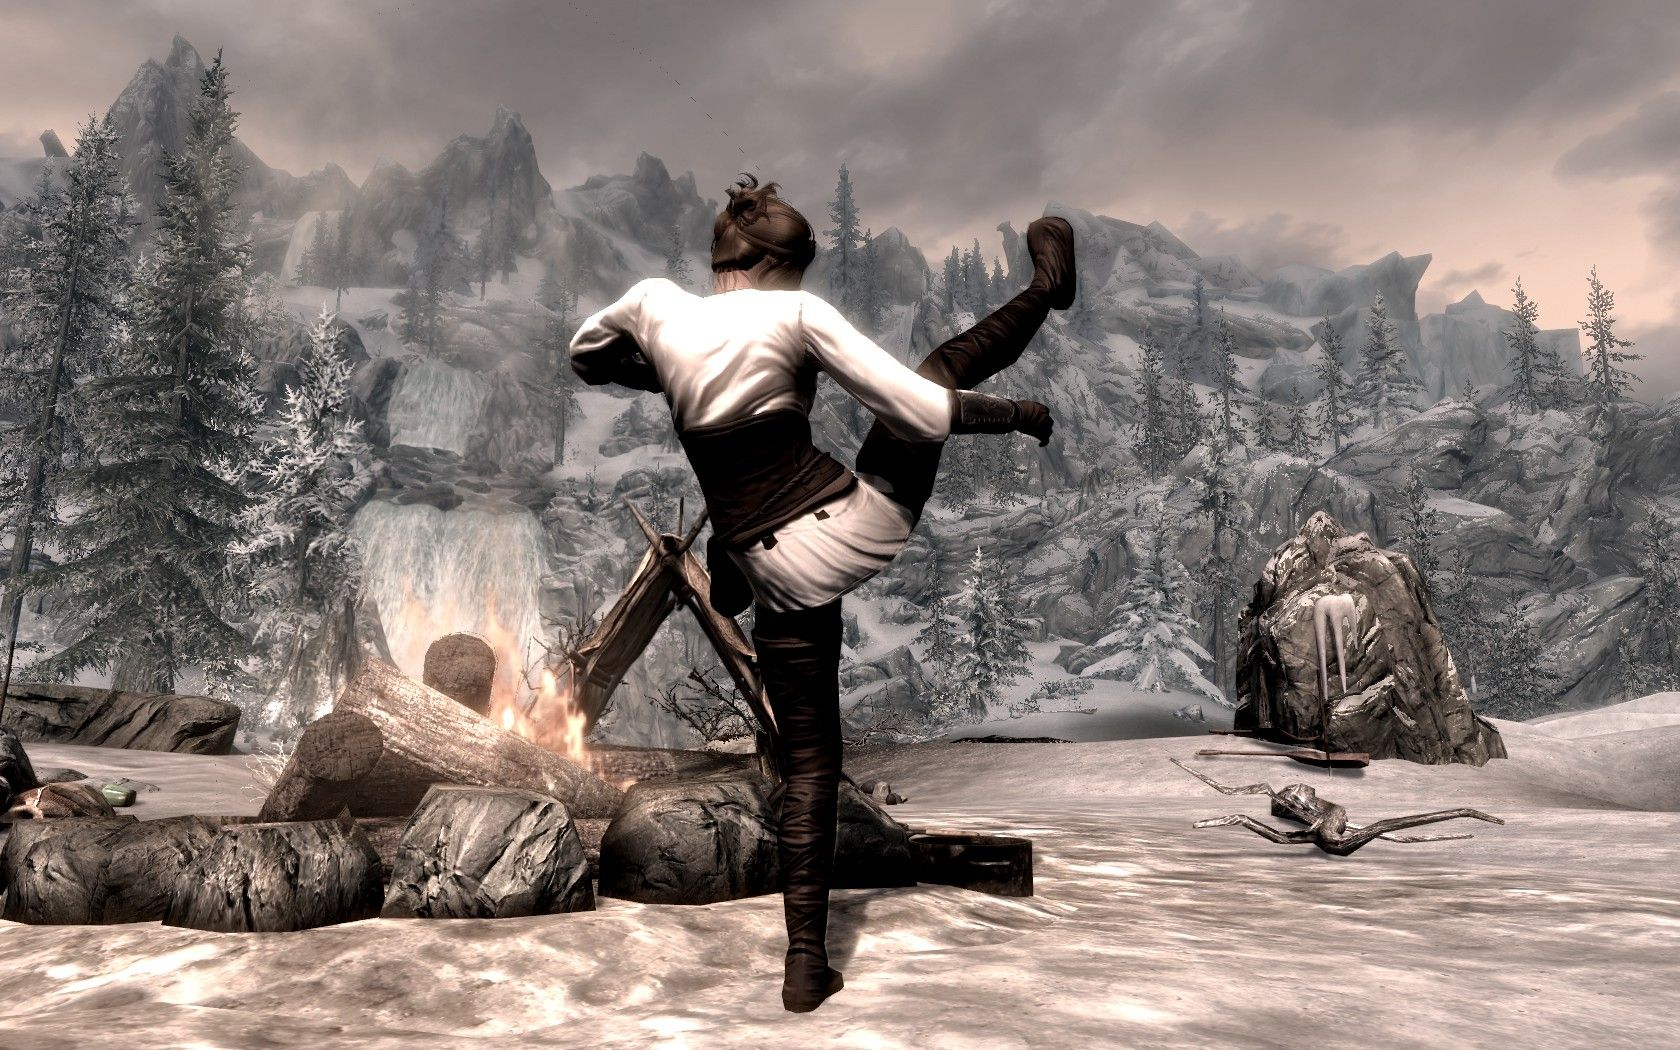 Unarmed Warfare - New Animations For Hand To Hand Combat at Skyrim